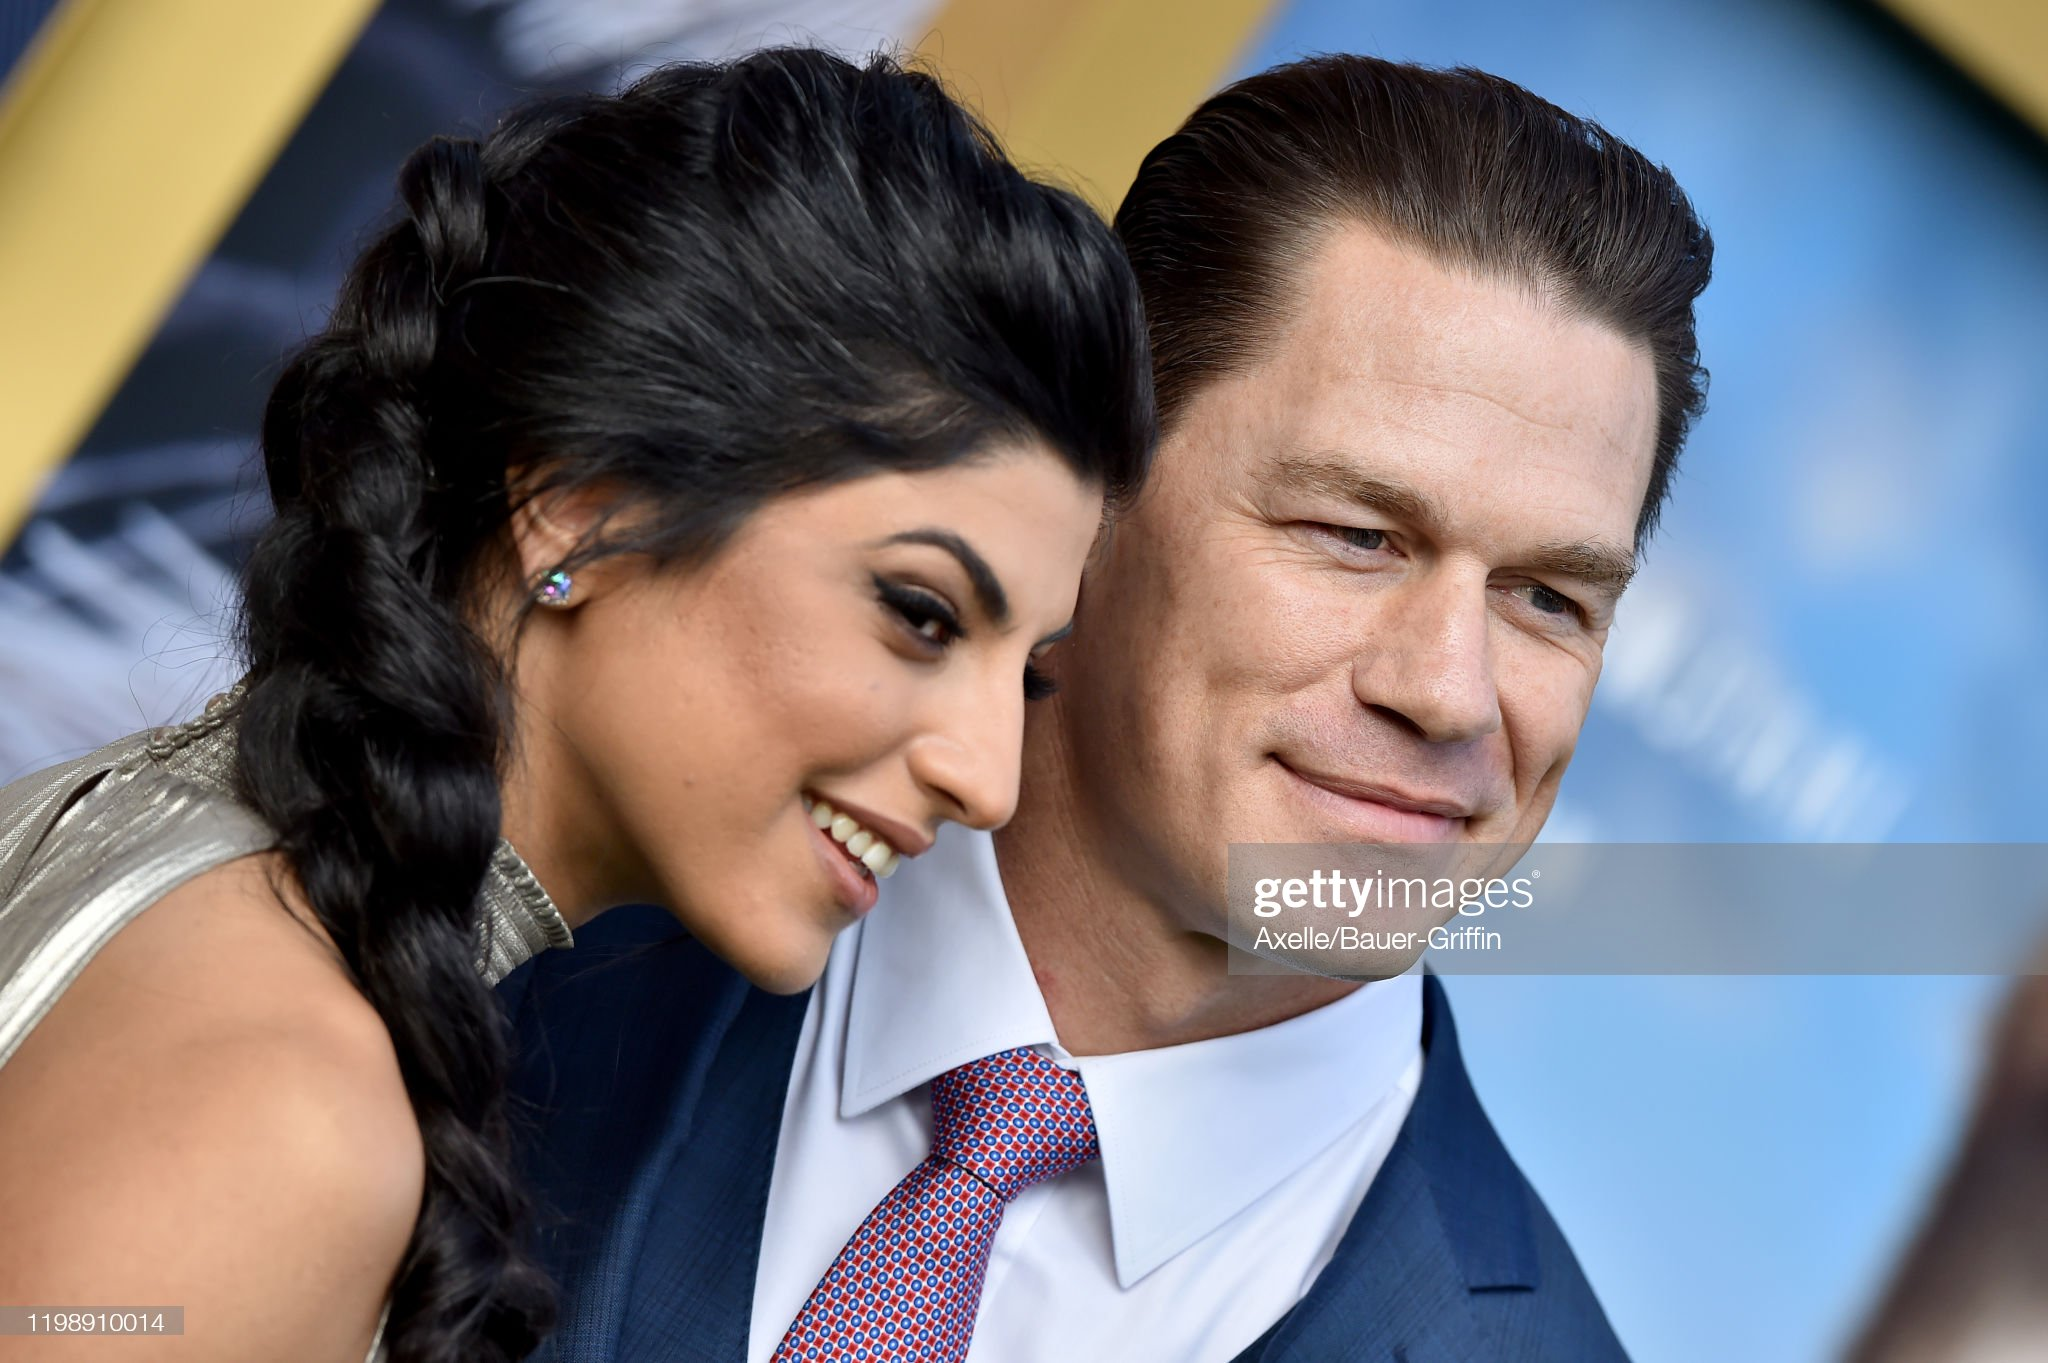 What do we know about John Cena's new wife?